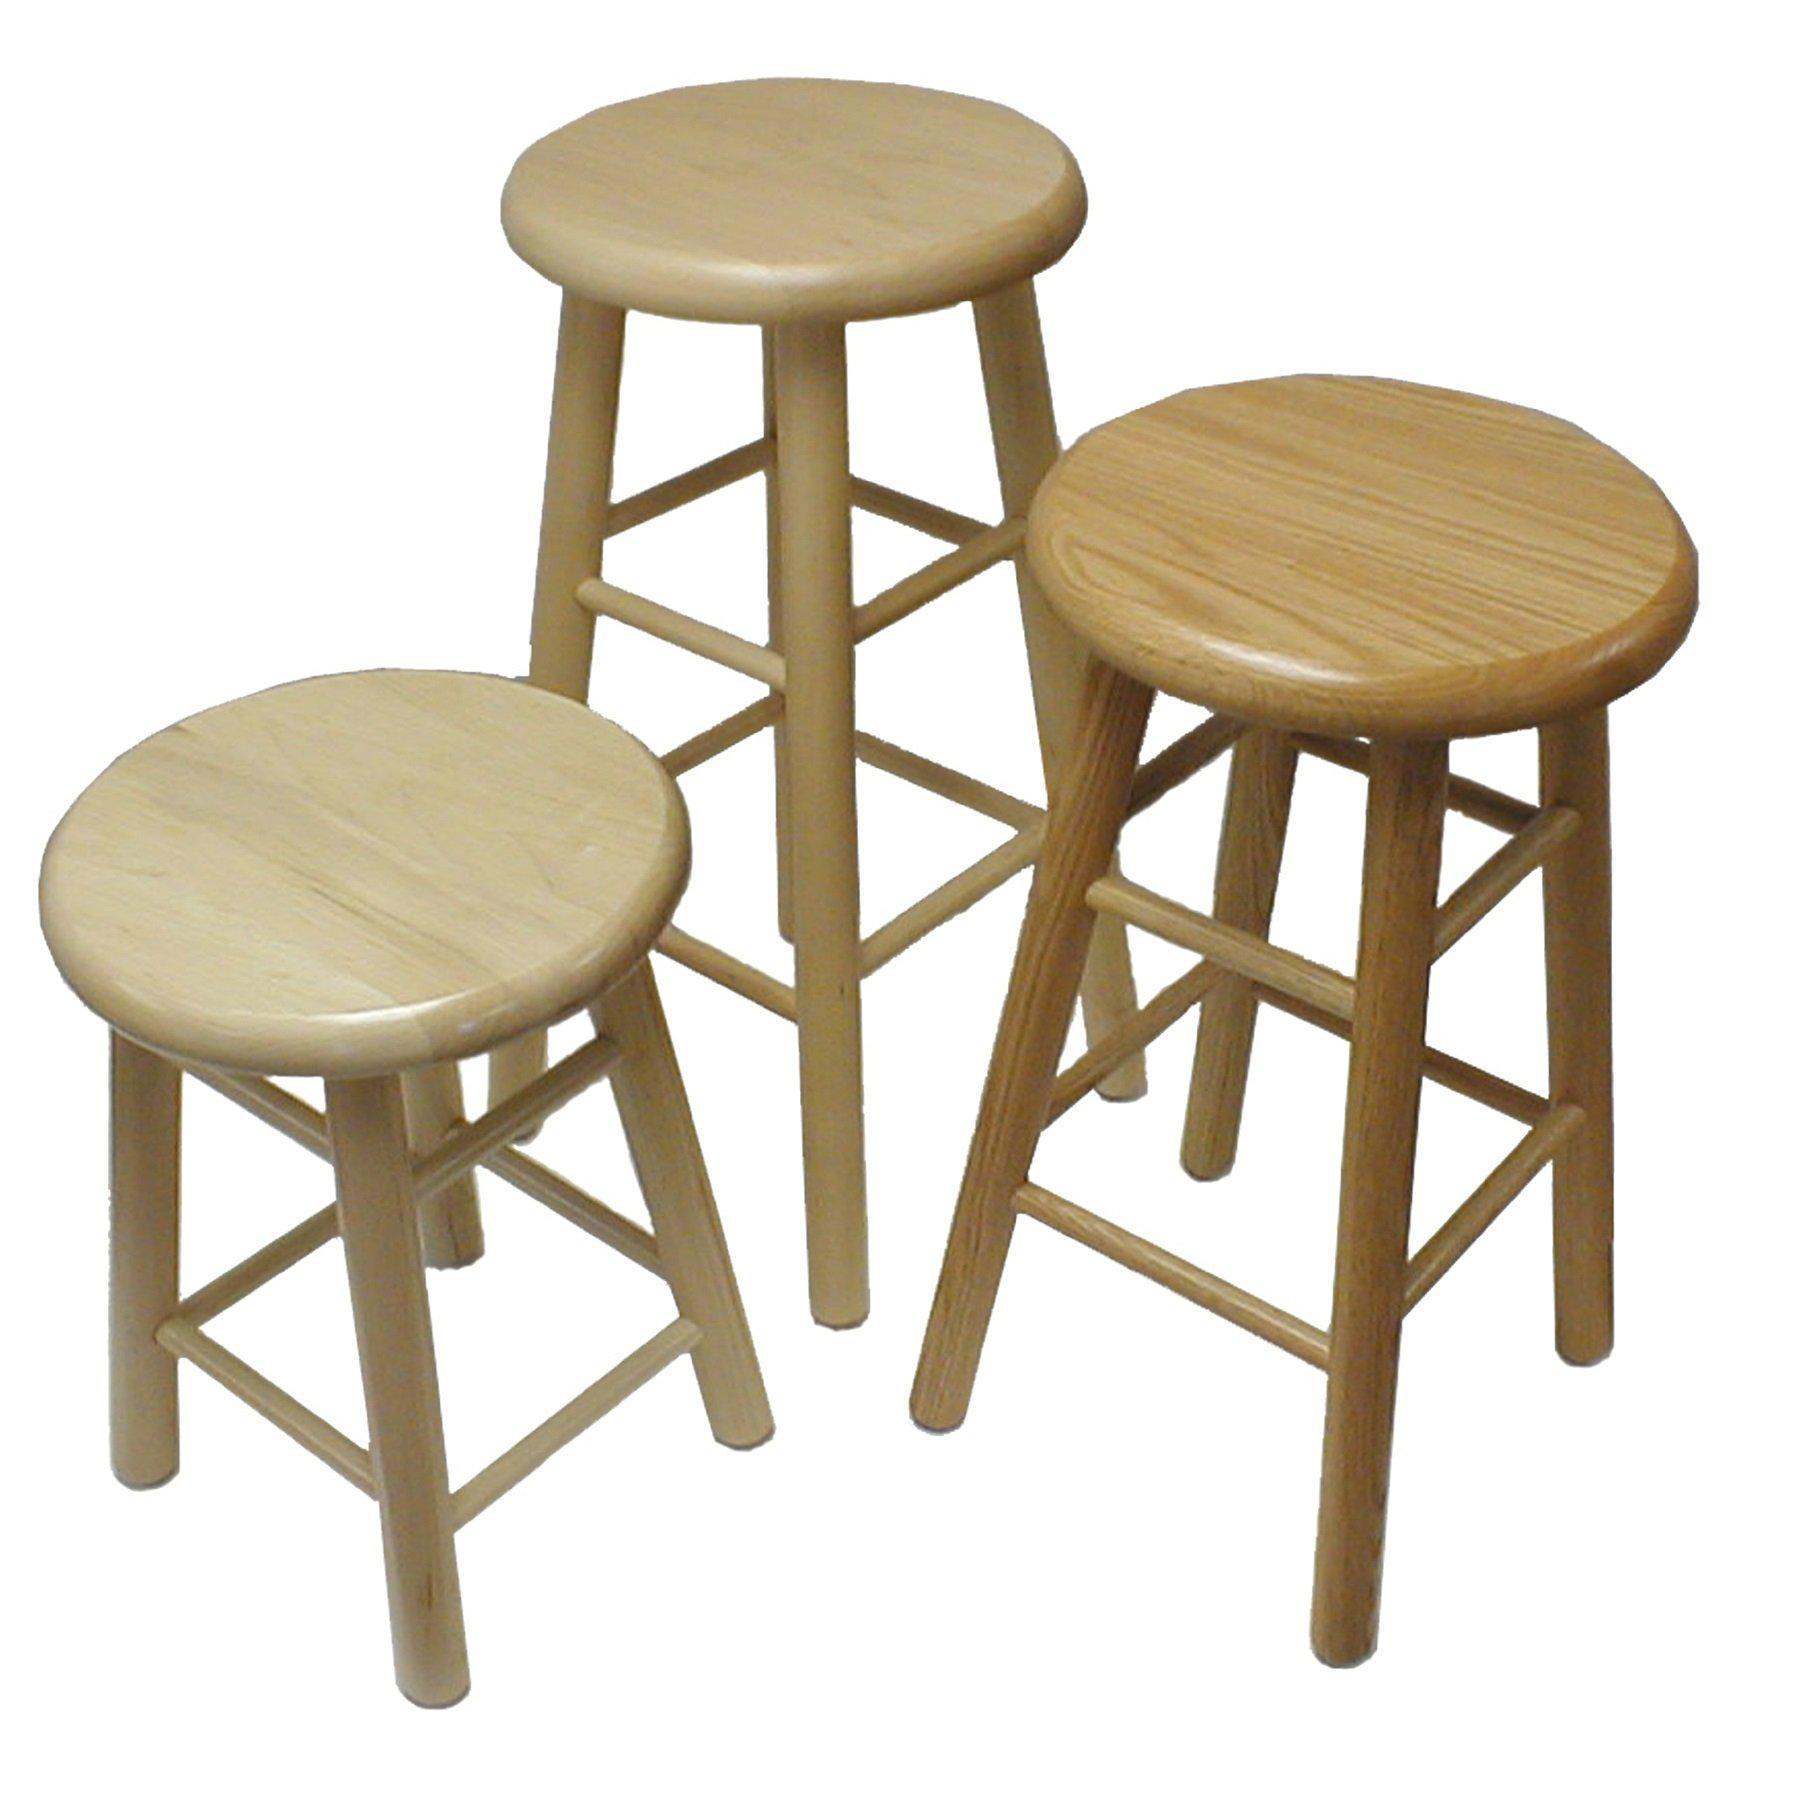 "Solid Wood Stool, 18"" High"